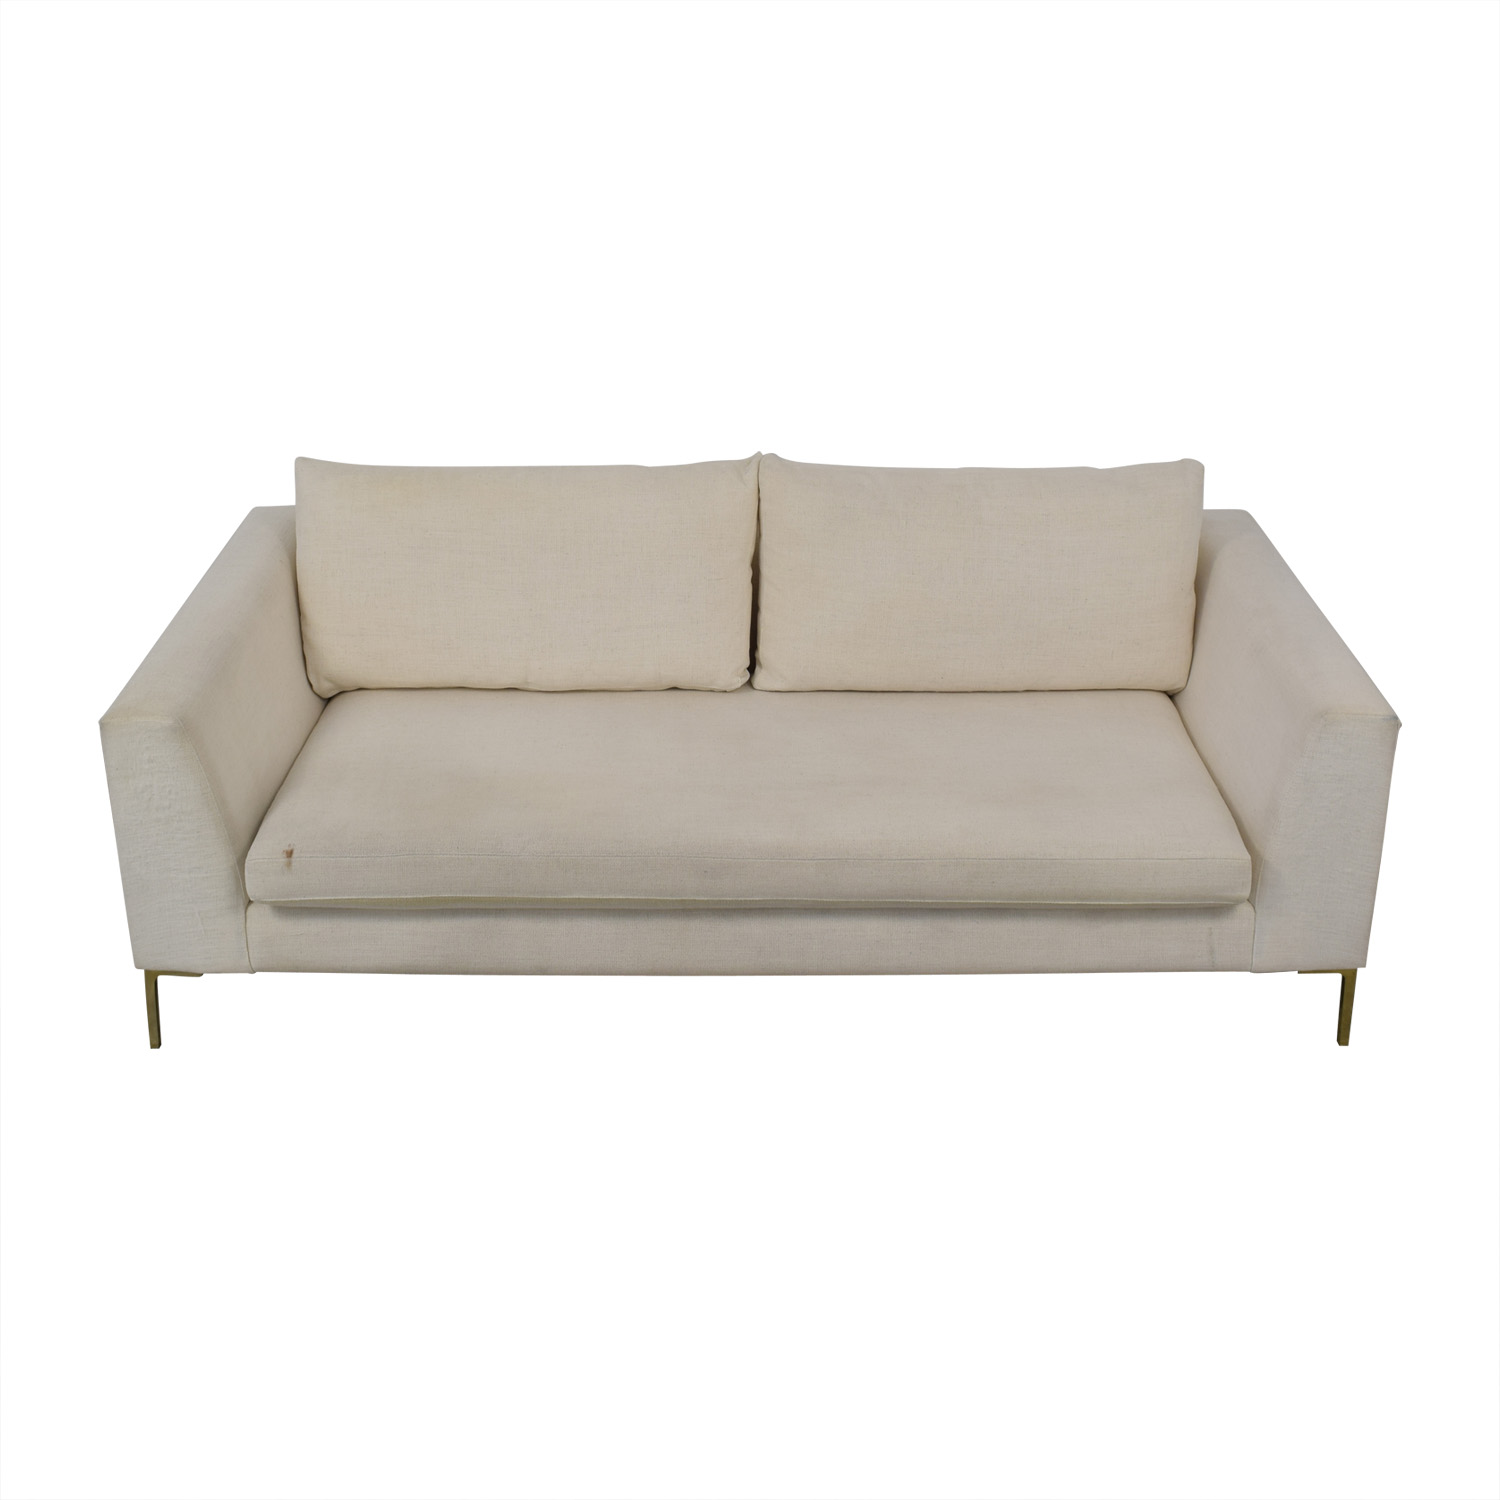 Anthropologie Antropologie Edlyn Sofa second hand